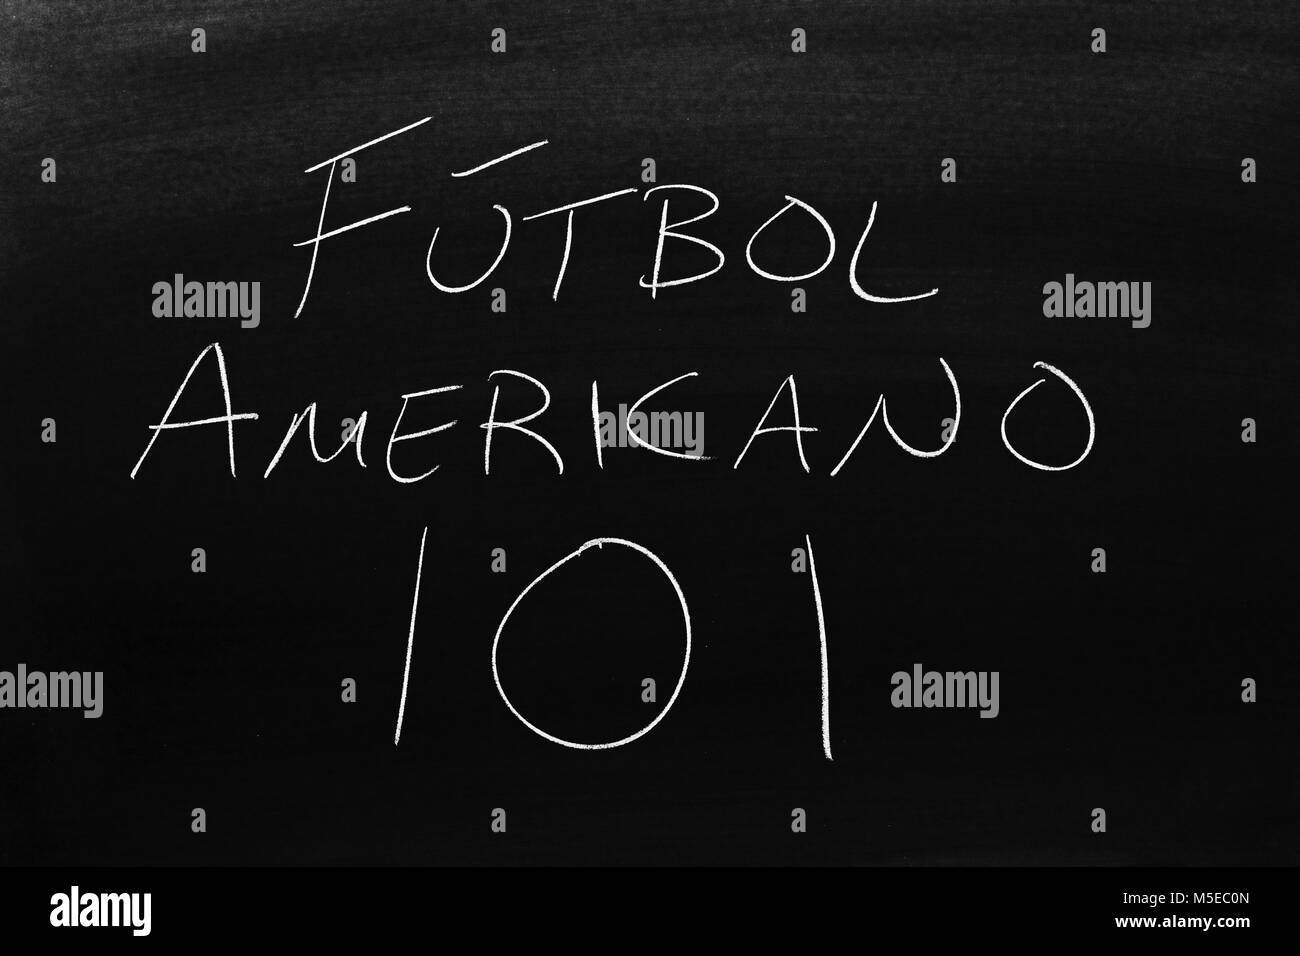 The words Fútbol Americano 101 on a blackboard in chalk - Stock Image